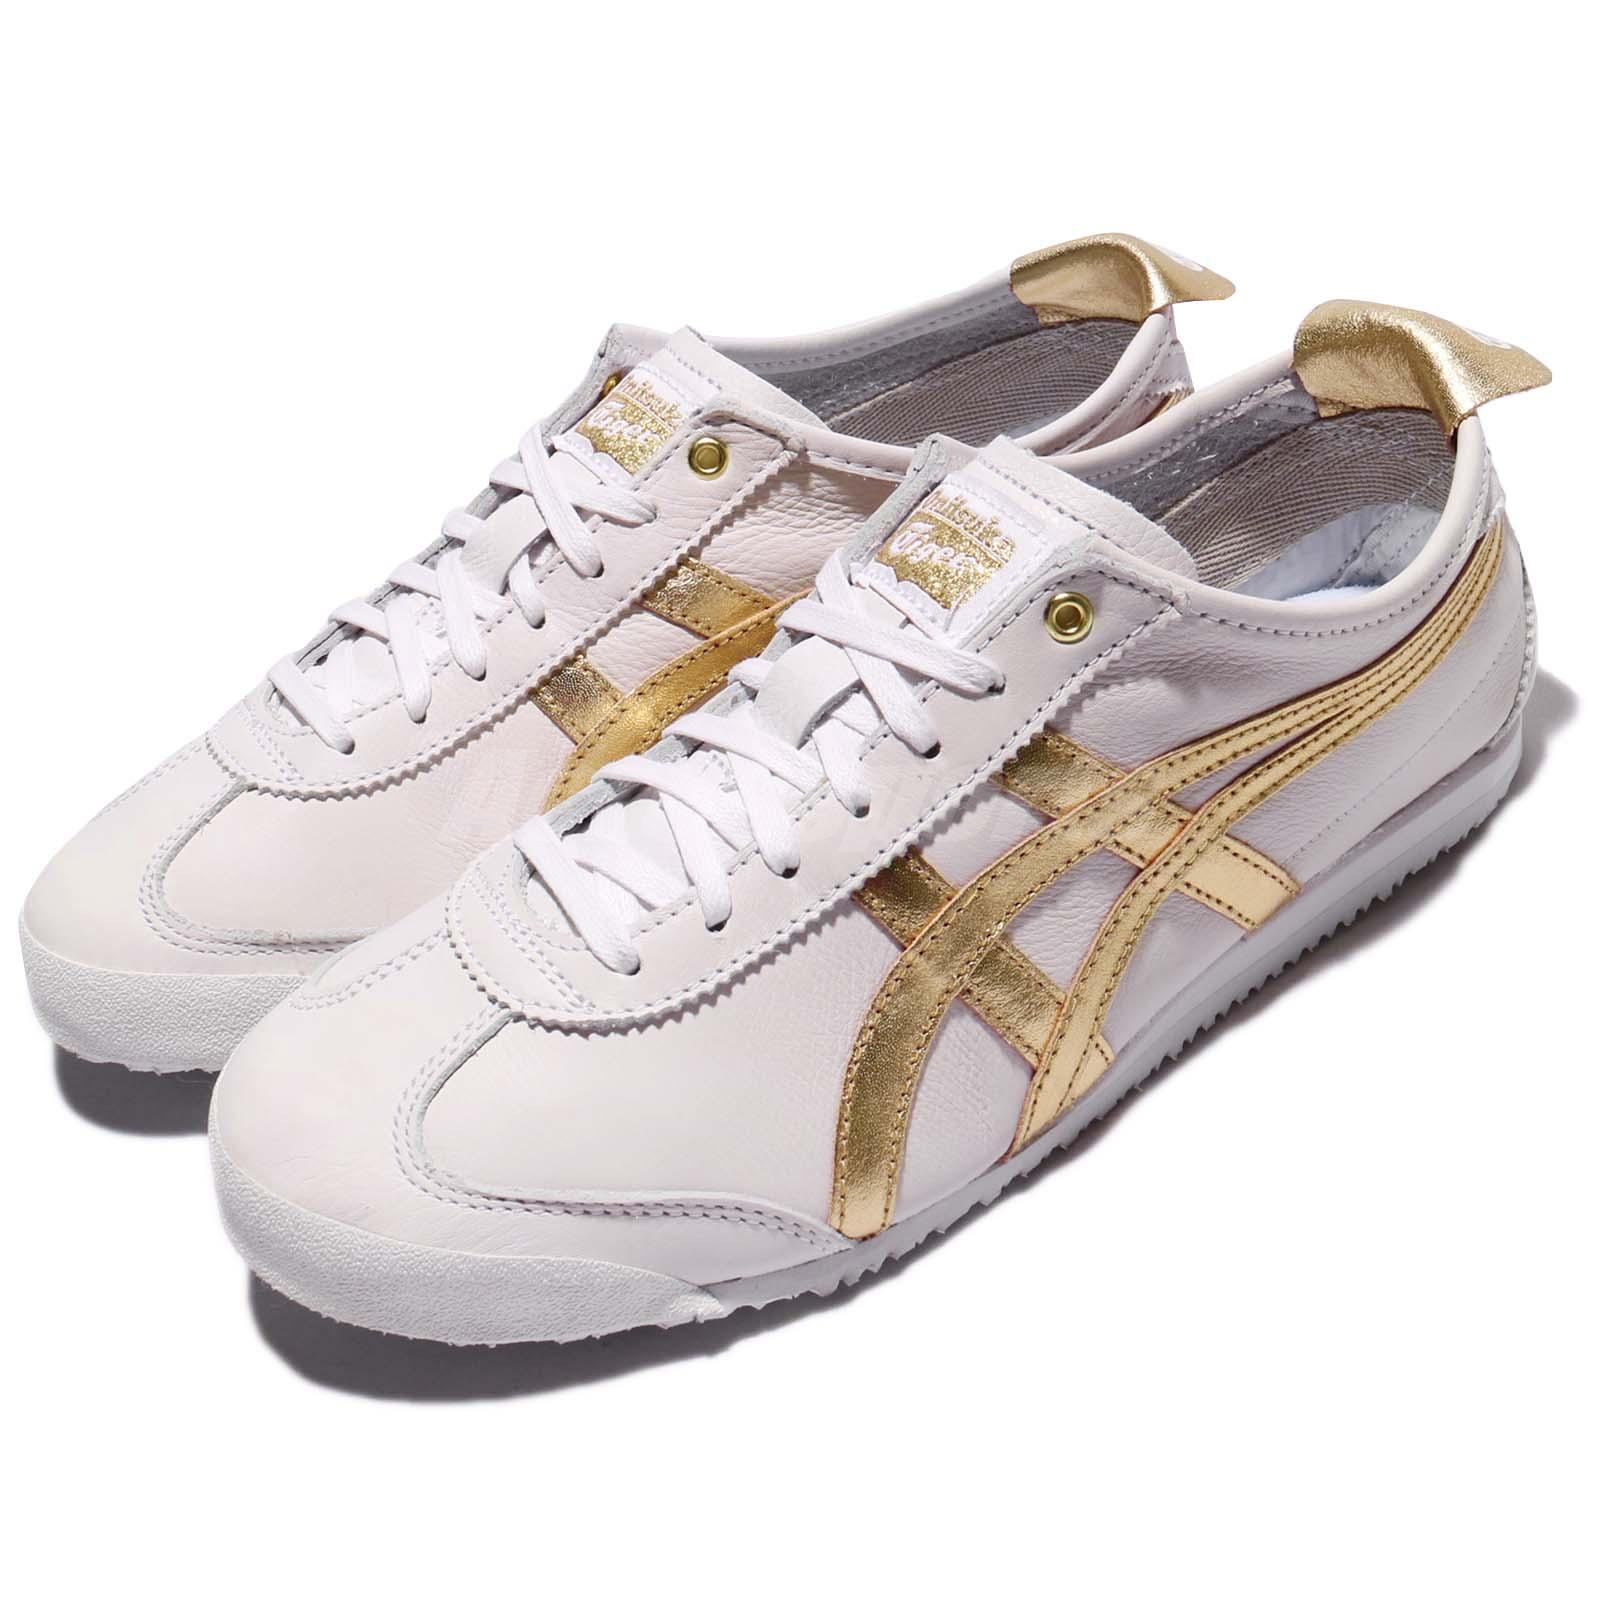 buy online 5044e 07fa8 Details about Asics Onitsuka Tiger Mexico 66 White Gold Leather Men Women  Vintage D508K-0194